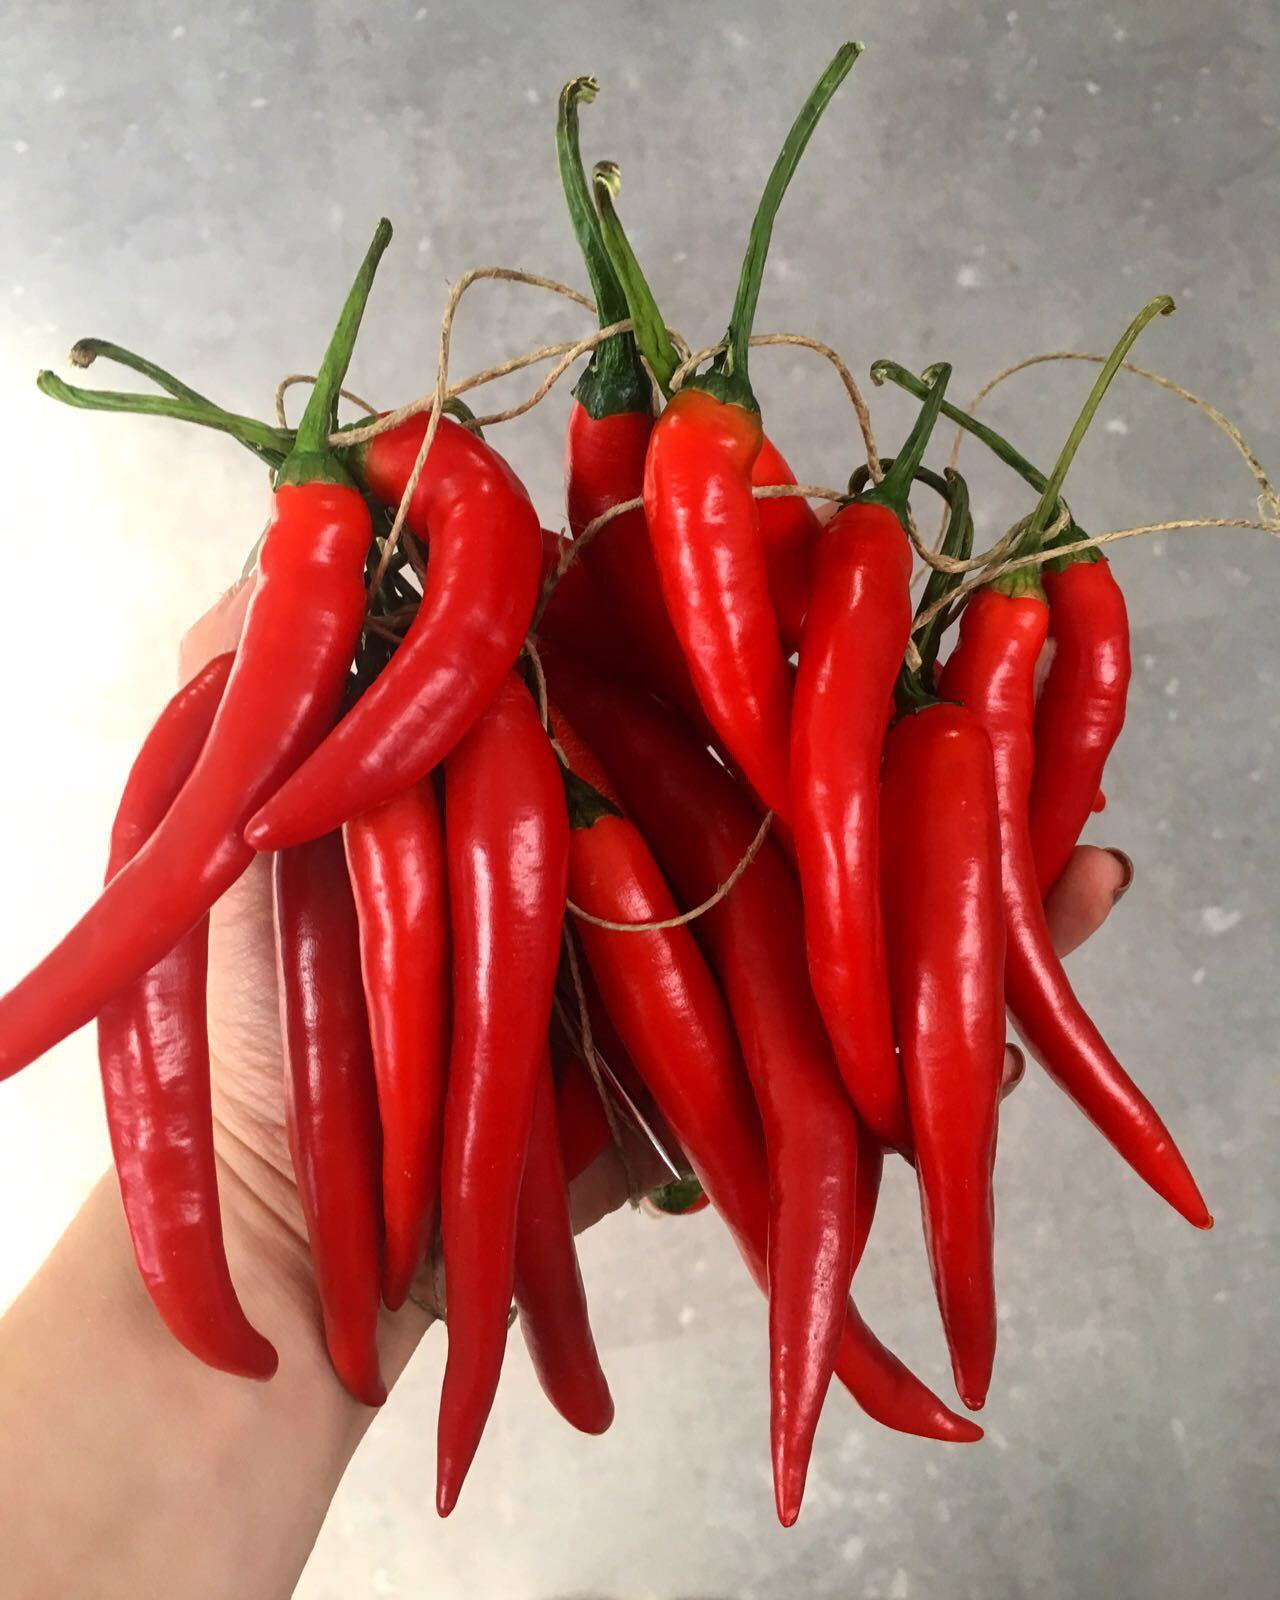 The mighty chillI! 🌶 What do you guys cook up with them?  https://t.co/IHkcfEbo5L https://t.co/tFppgercOo